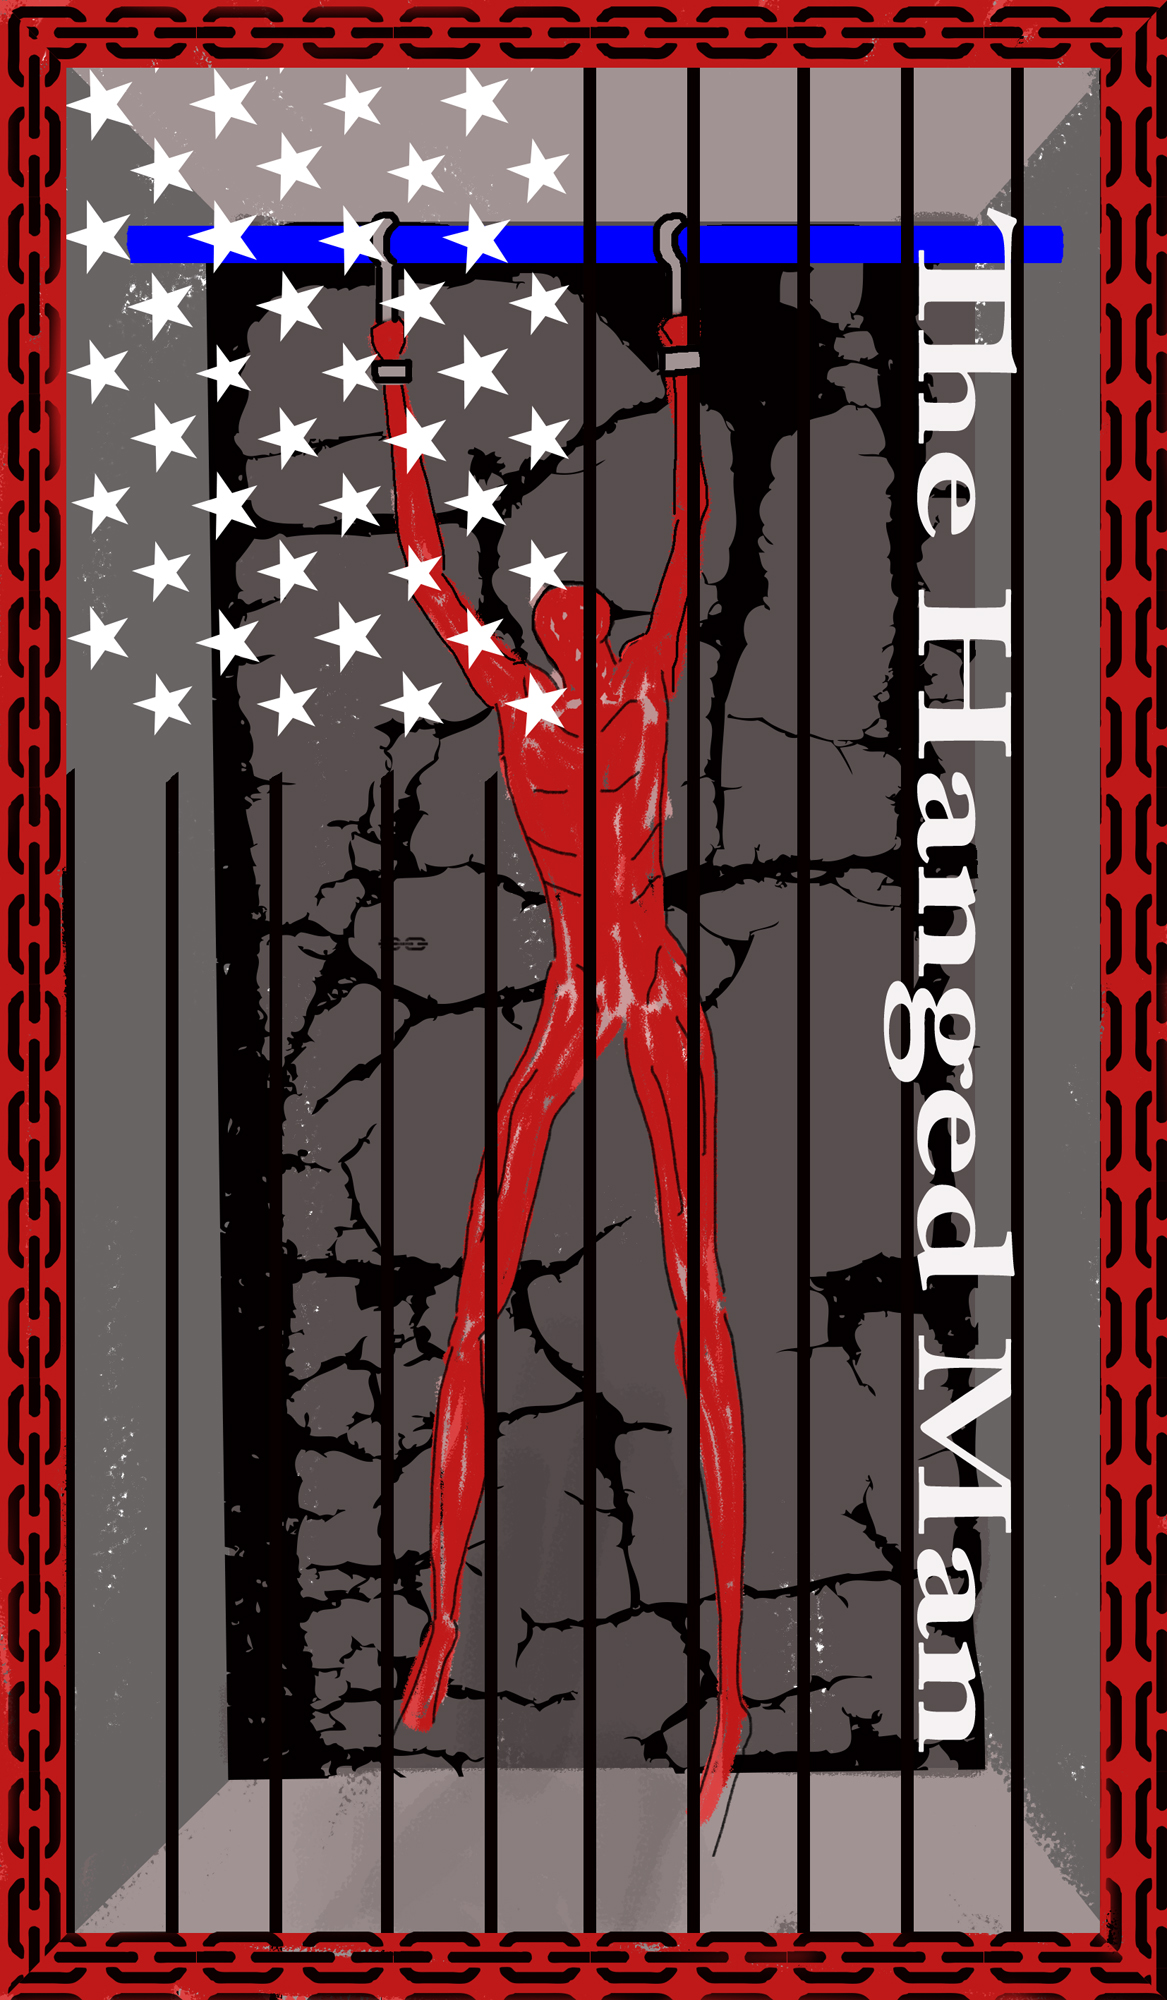 Prison cell with an elongated red figured hanging from the top of the cell. The bordder of the card- red chains- the bars on the cell and stars in the upper left hand corner make an American flag